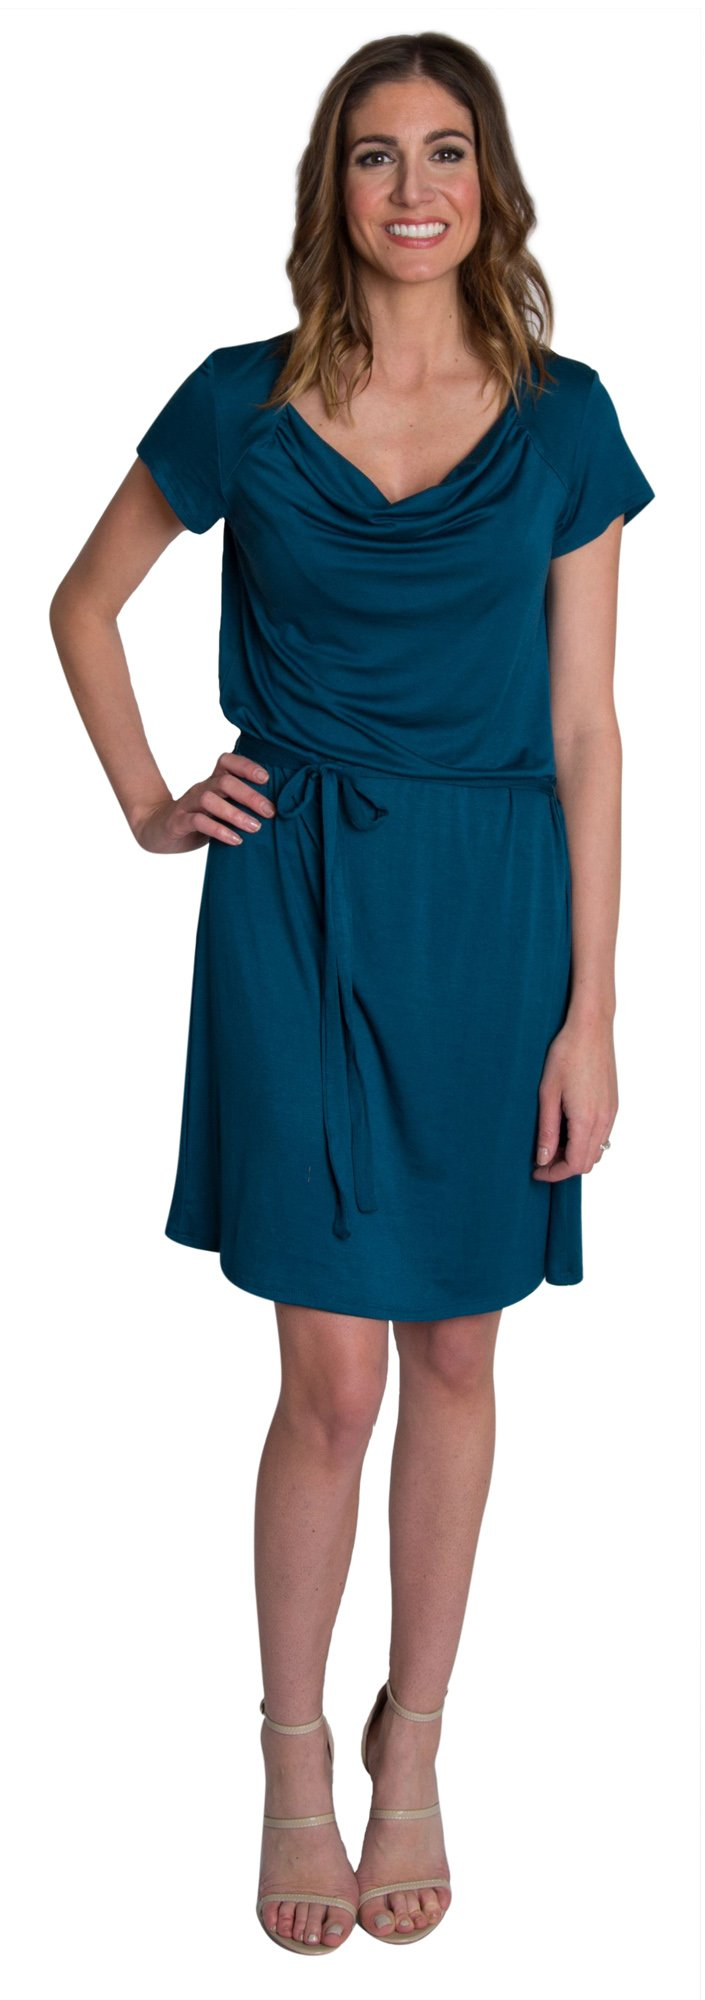 Udderly Hot Mama Chic Cowl Soft Drape Nursing and Pumping Dress - Teal, Size 2